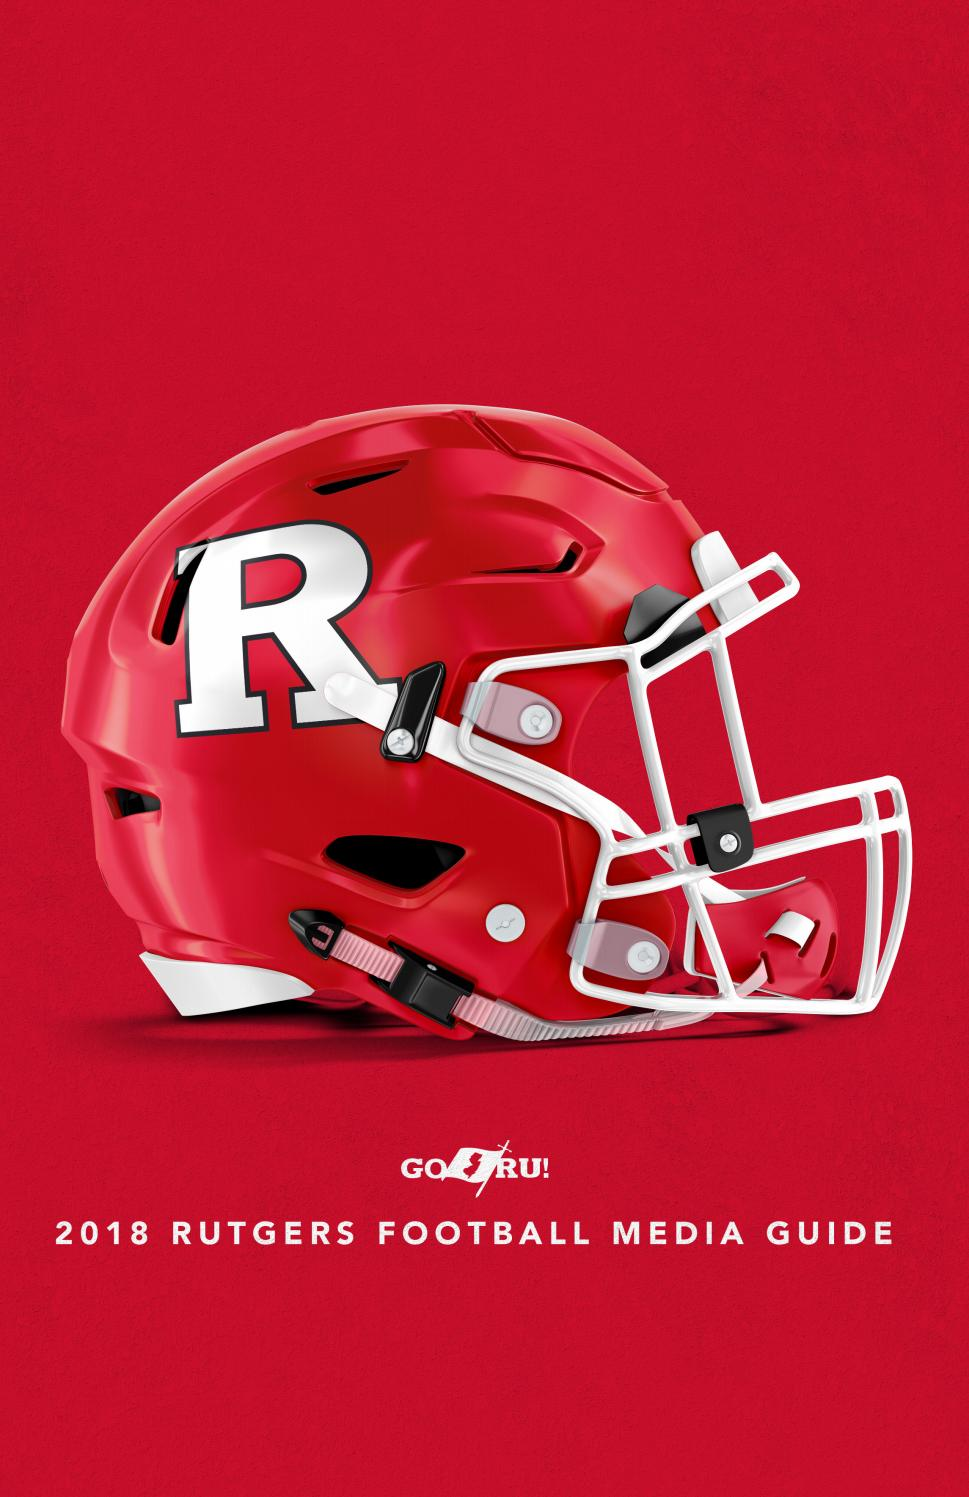 2586f7985c90d 2018 Rutgers Football Media Guide by Rutgers Athletics - issuu